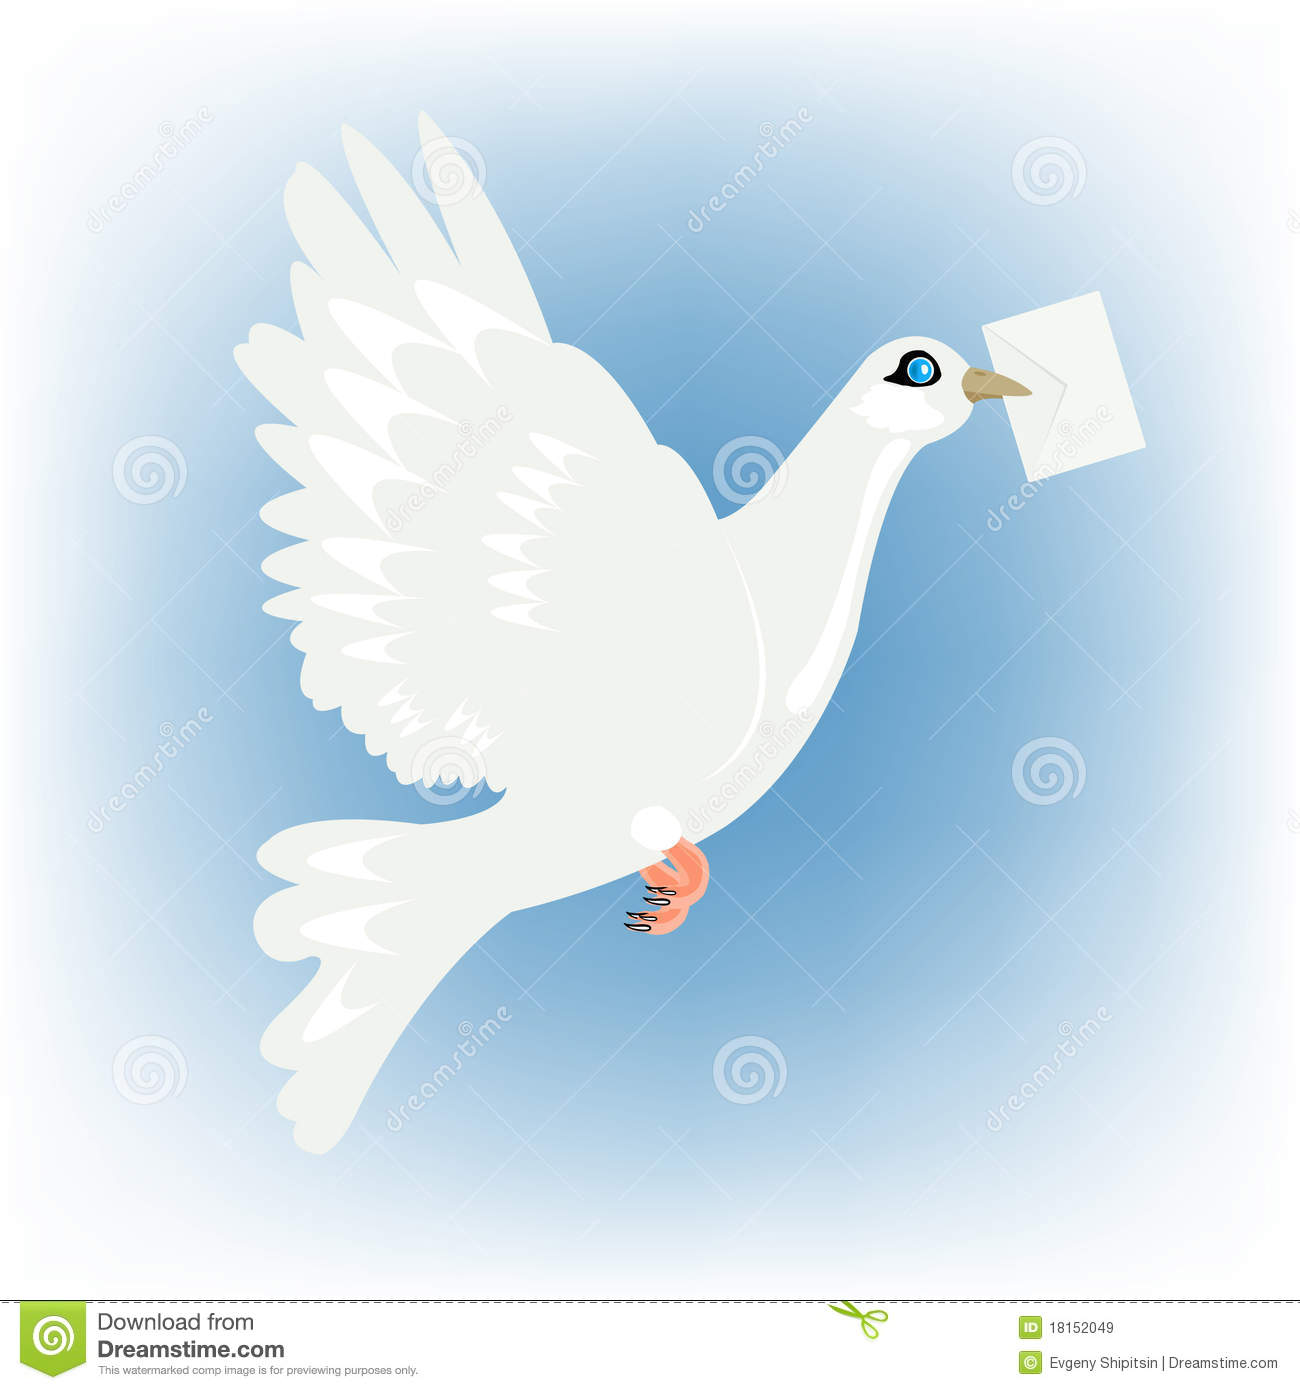 Carrier pigeon with letter in beak royalty free stock images image